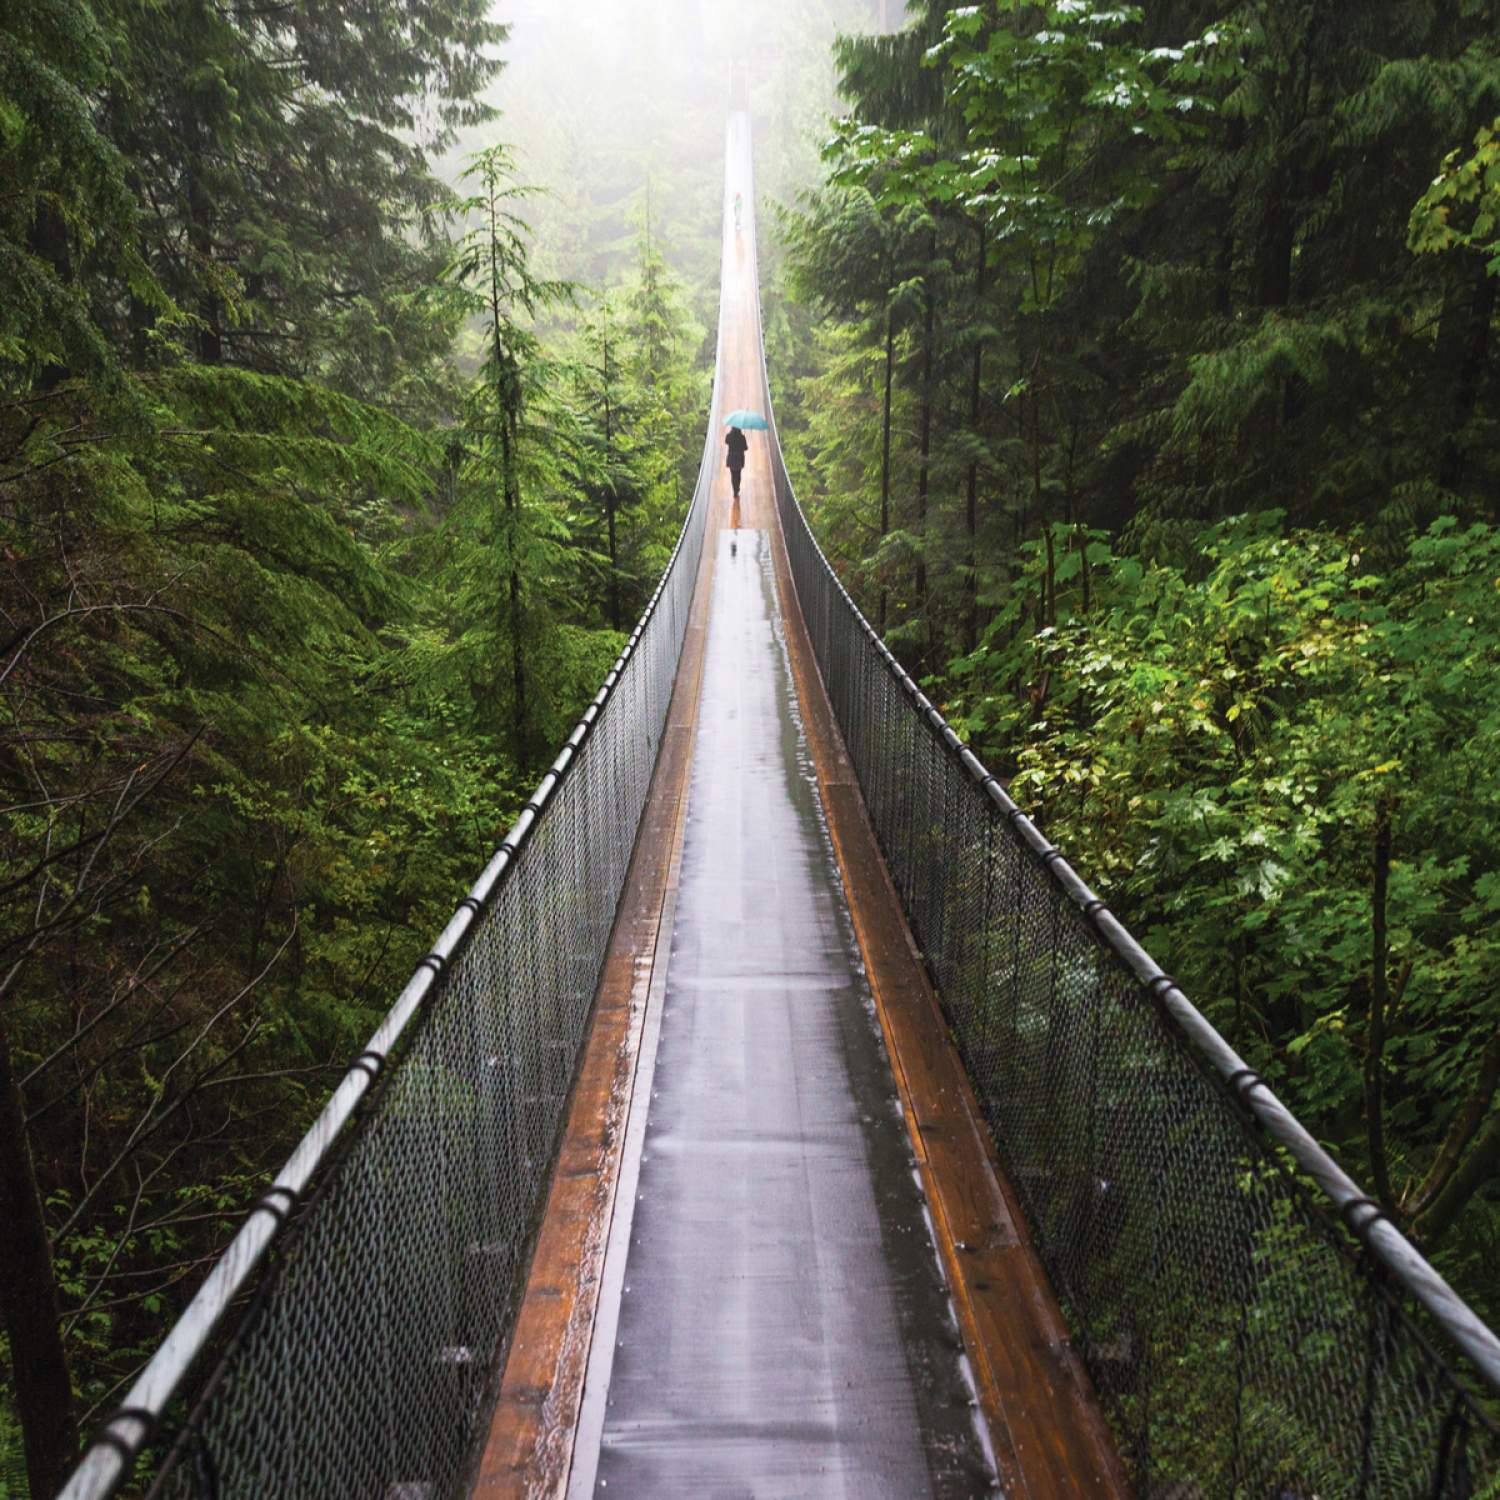 Capilano's suspension bridge in Vancouver, Canada